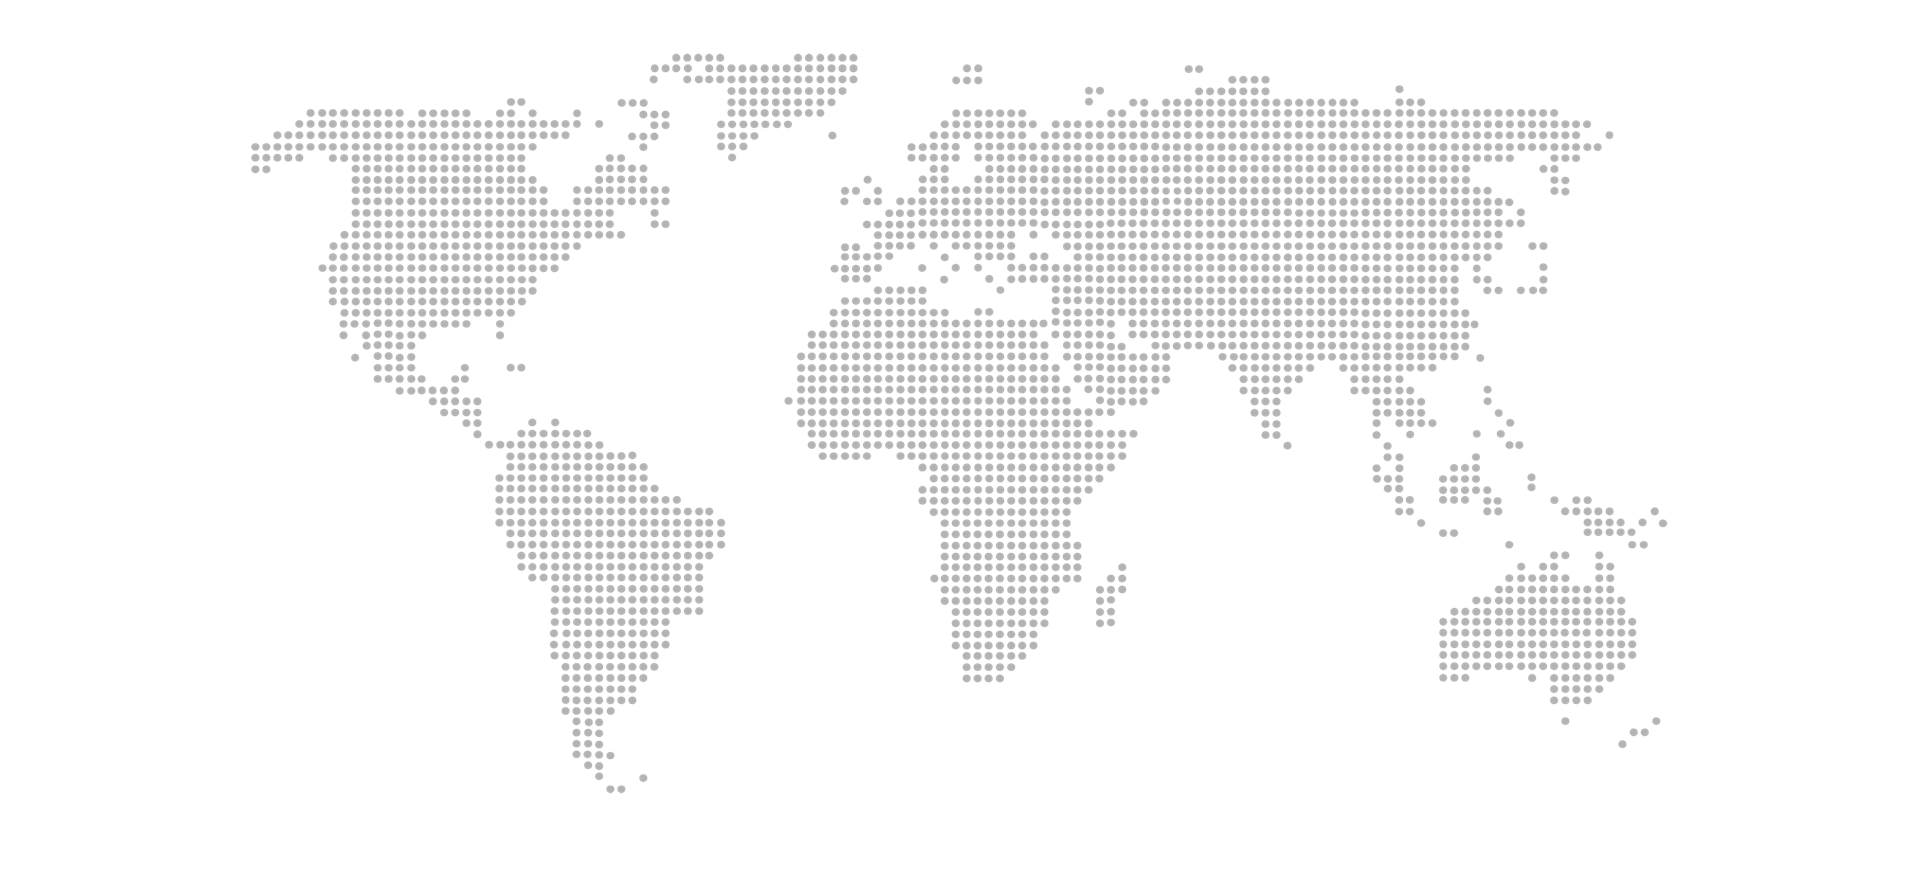 Outline transparent world map new ethernet plug wiring diagram free outline of world map picture ideas references worldmap new empty dark outline of world maphtml outline transparent world map new gumiabroncs Image collections